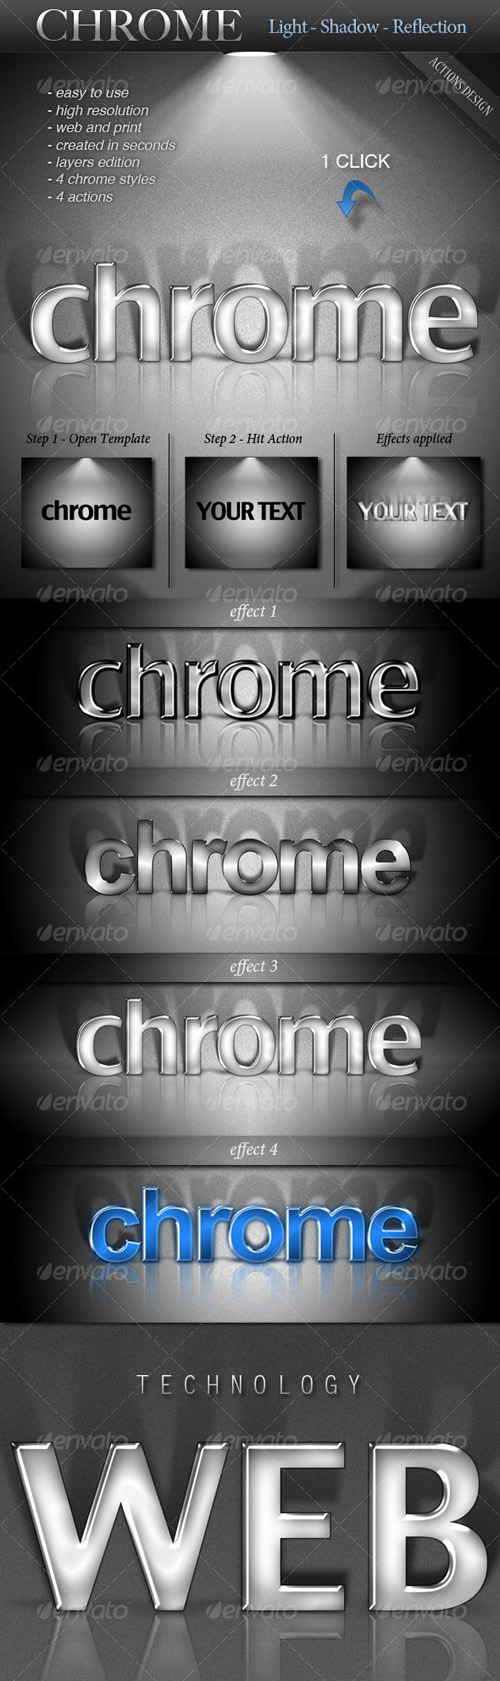 GraphicRiver - CHROME - Light, Shadow, Reflection